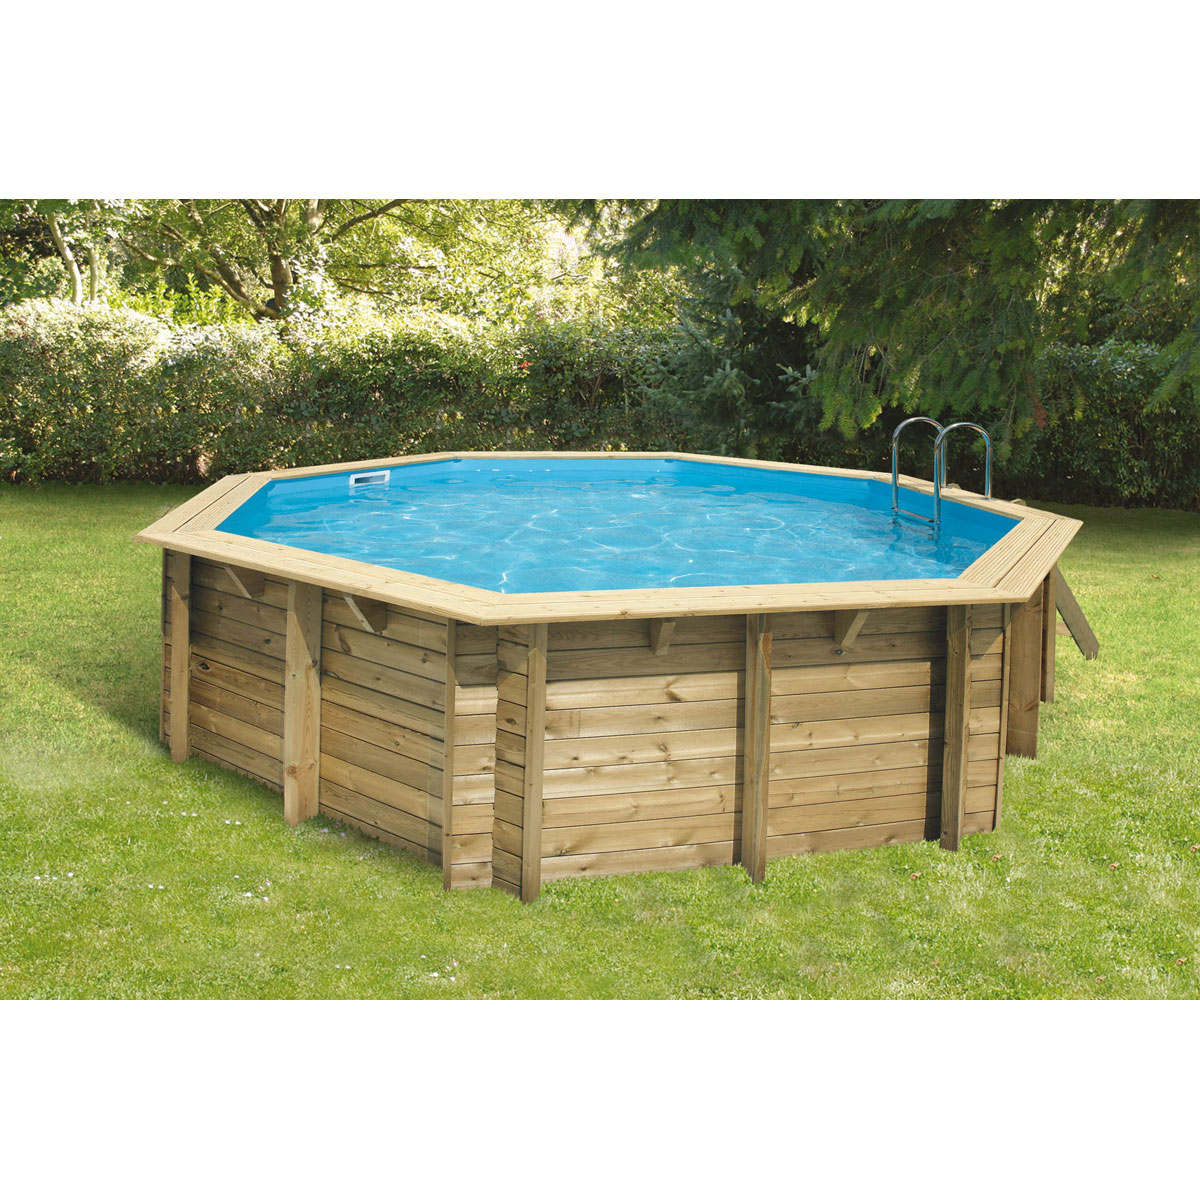 Guide choisir sa piscine hors sol les piscines en bois for Piscines autoportees